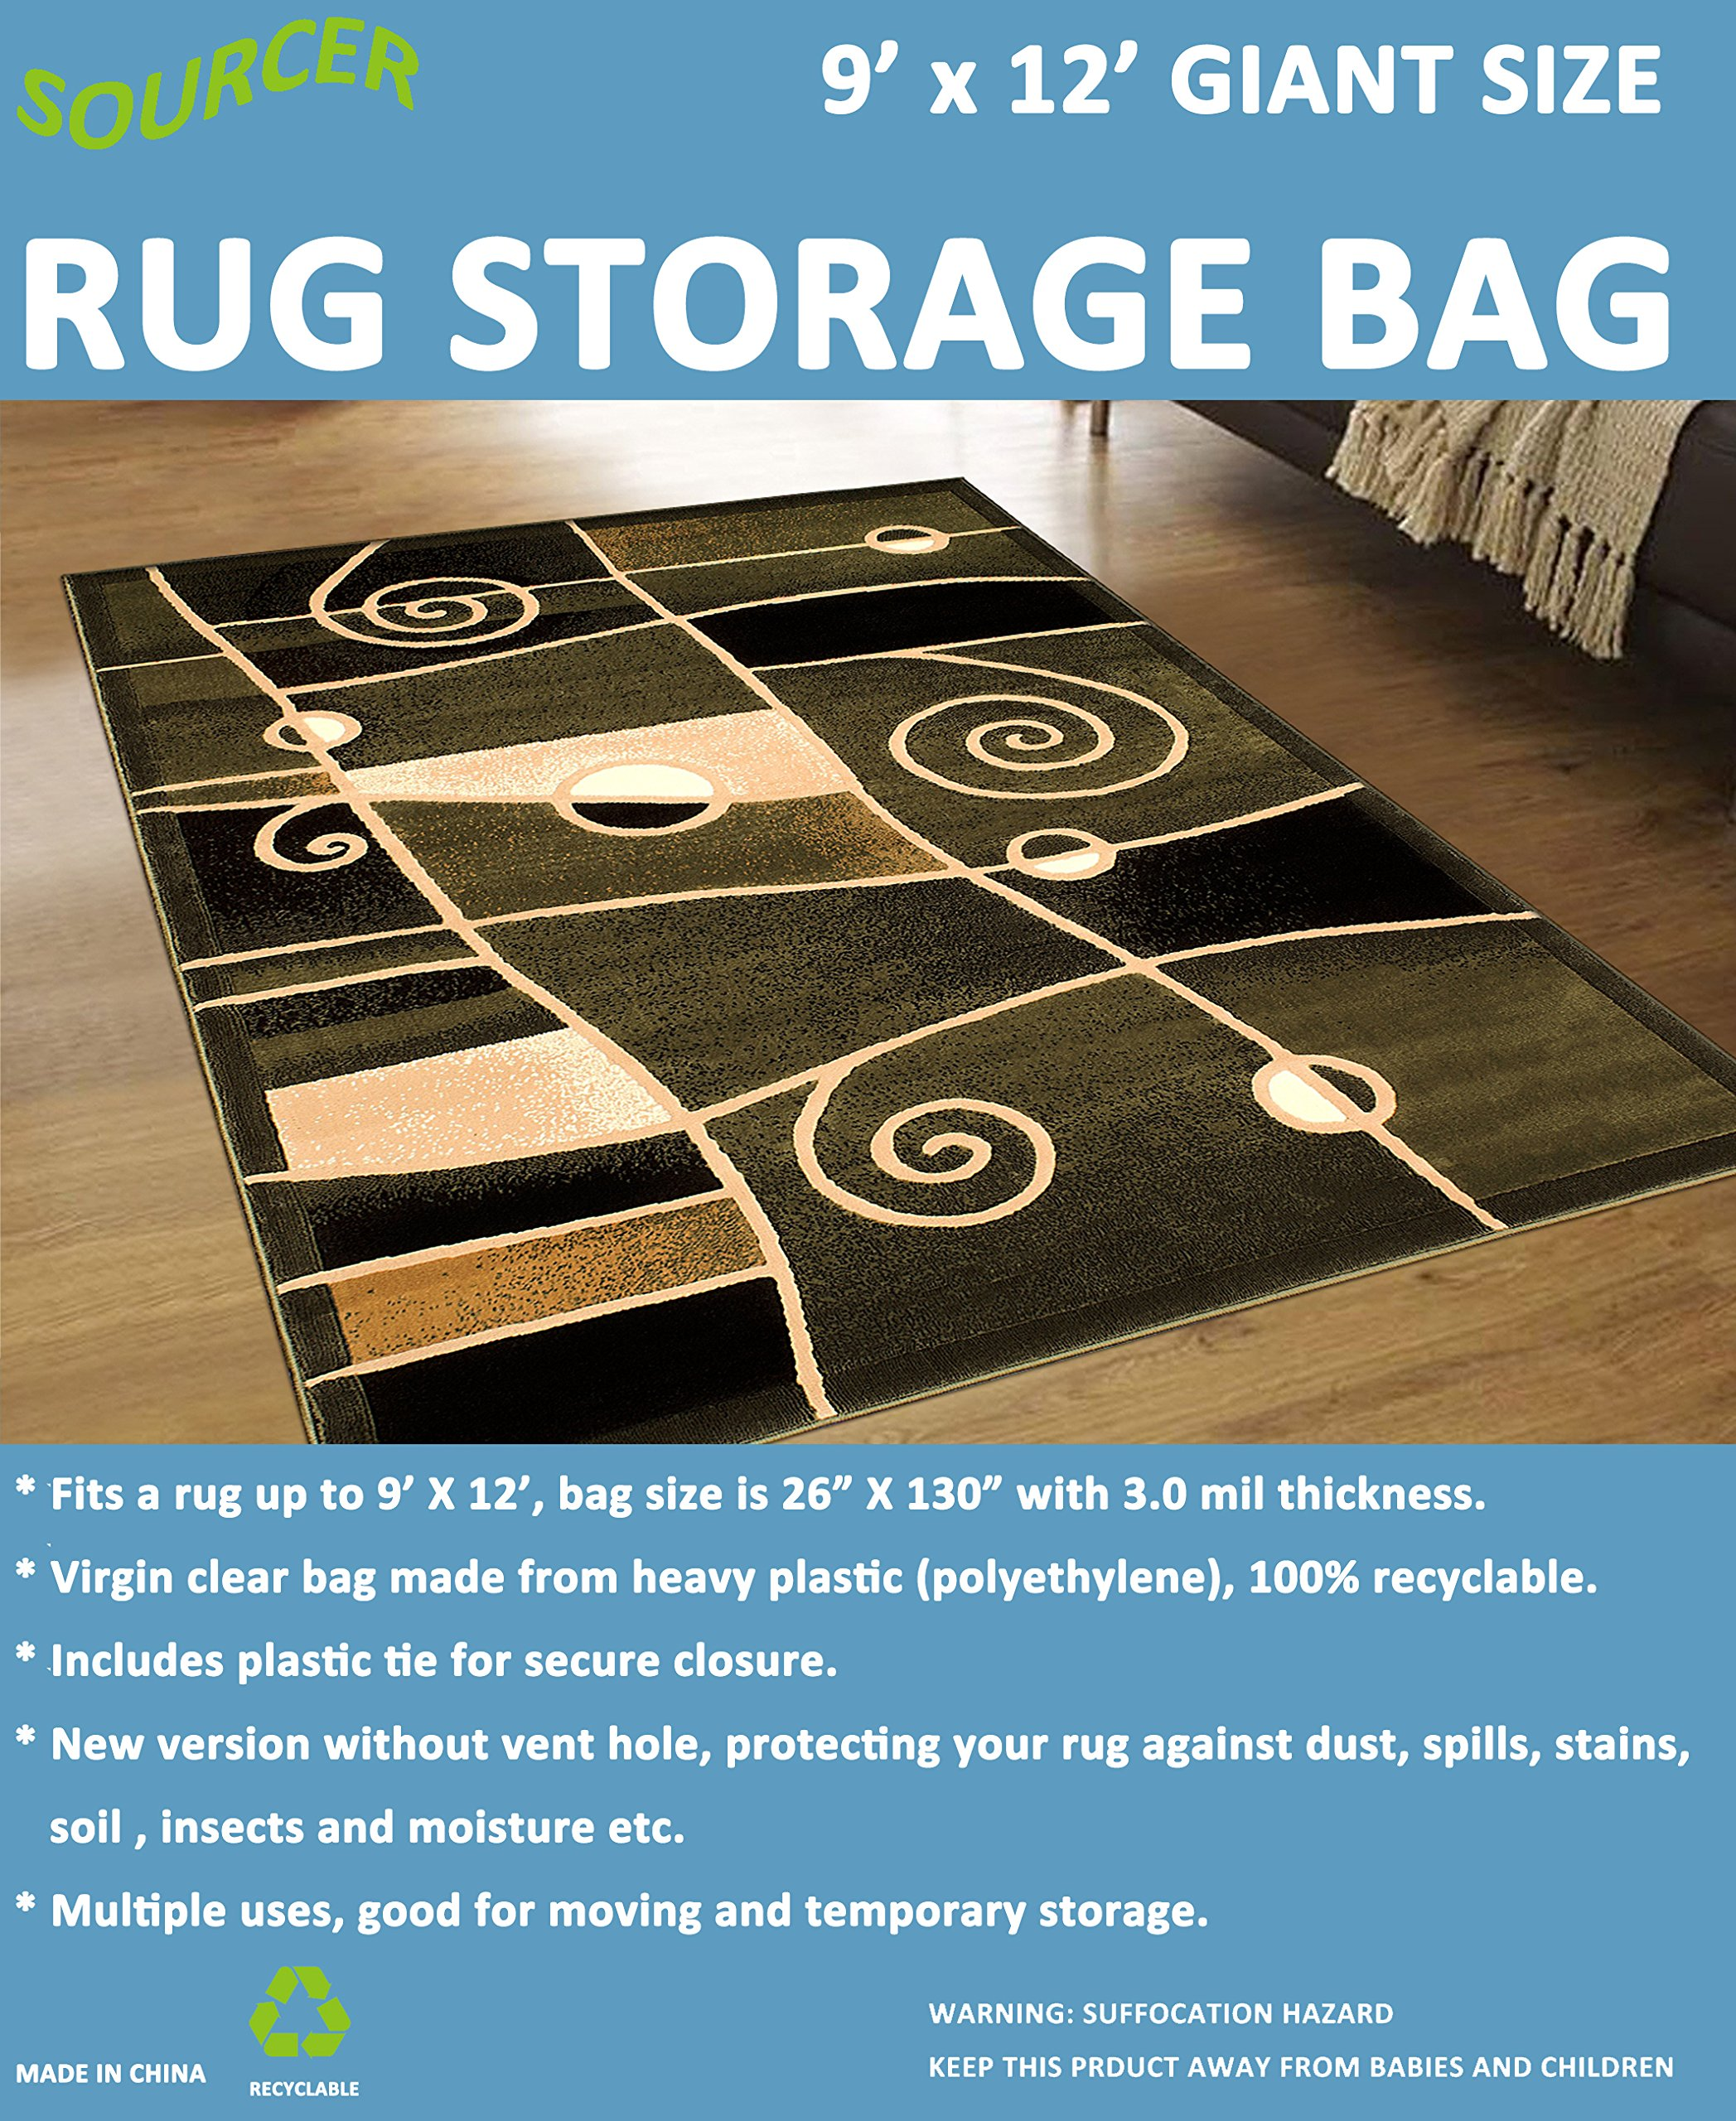 Rug Bag for Moving and Storage, SOURCER No Vent Hole against Dust, Moisture, Bugs, Water and Dirt. 9' x 12'